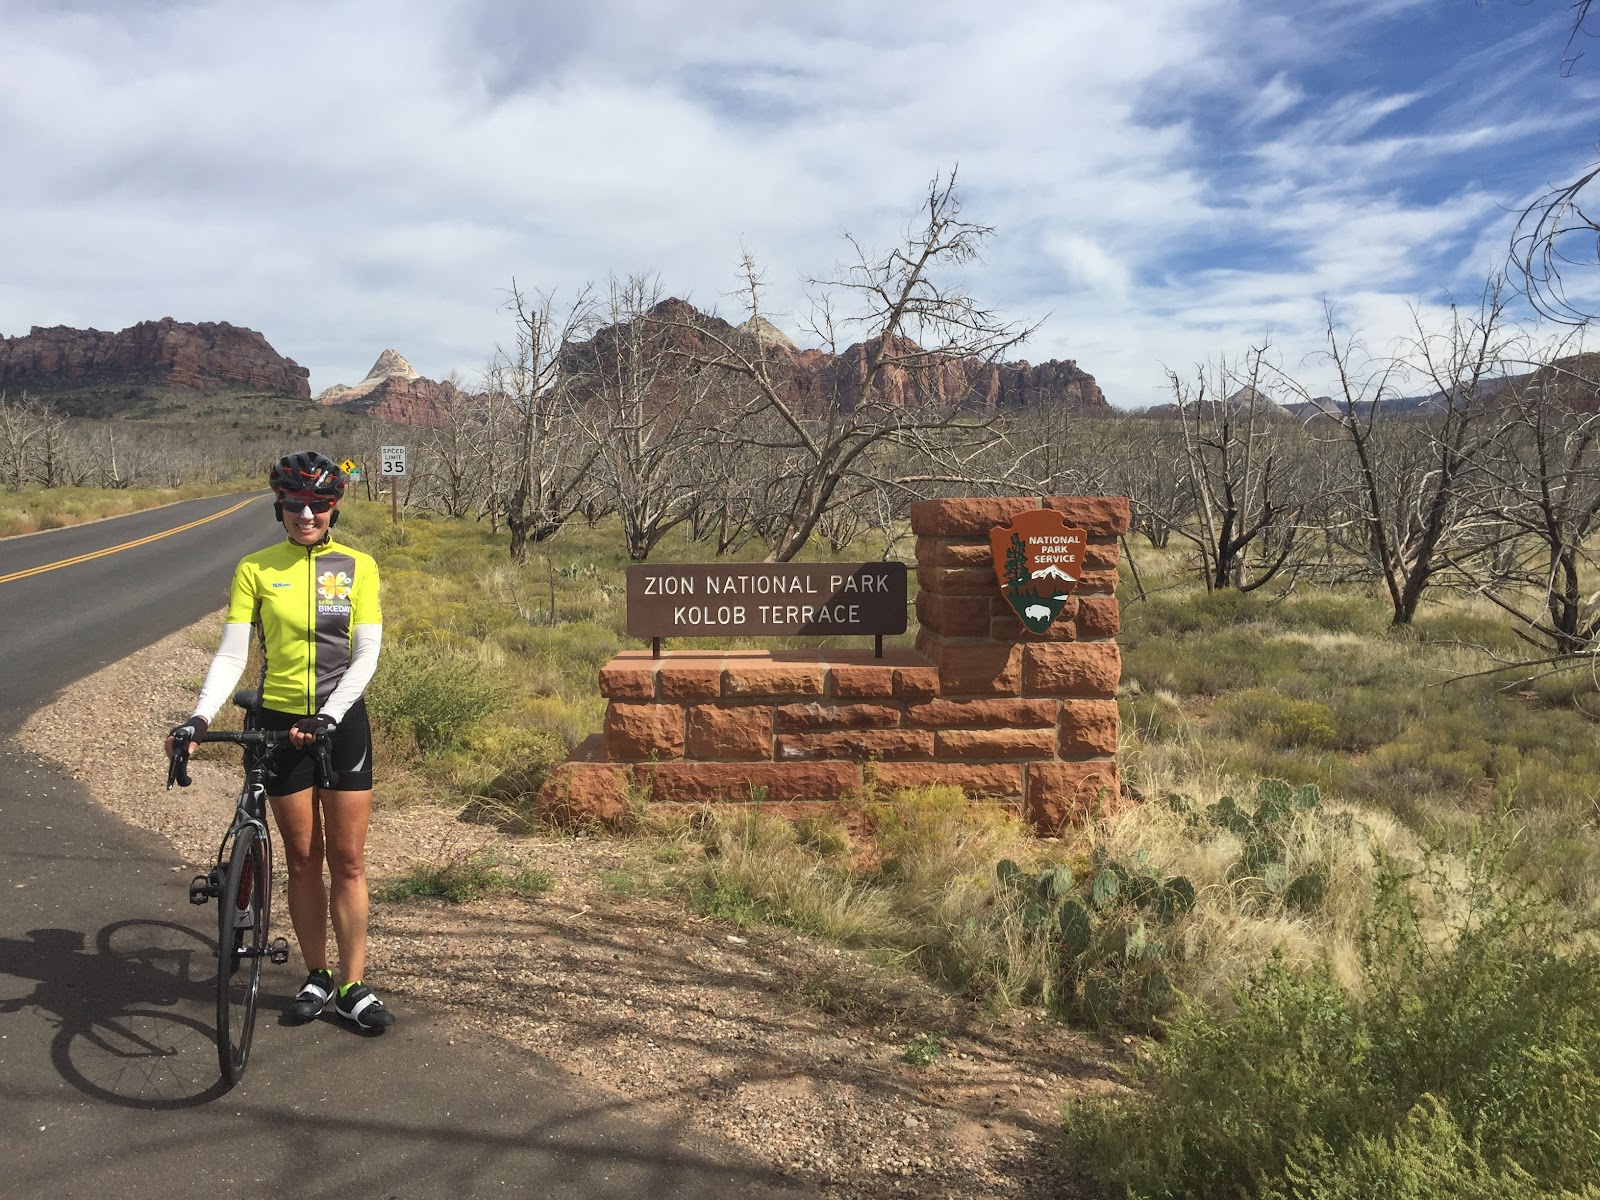 Climbing Kolob Terrace by bike - cyclist at Zion National Park Sign with bike